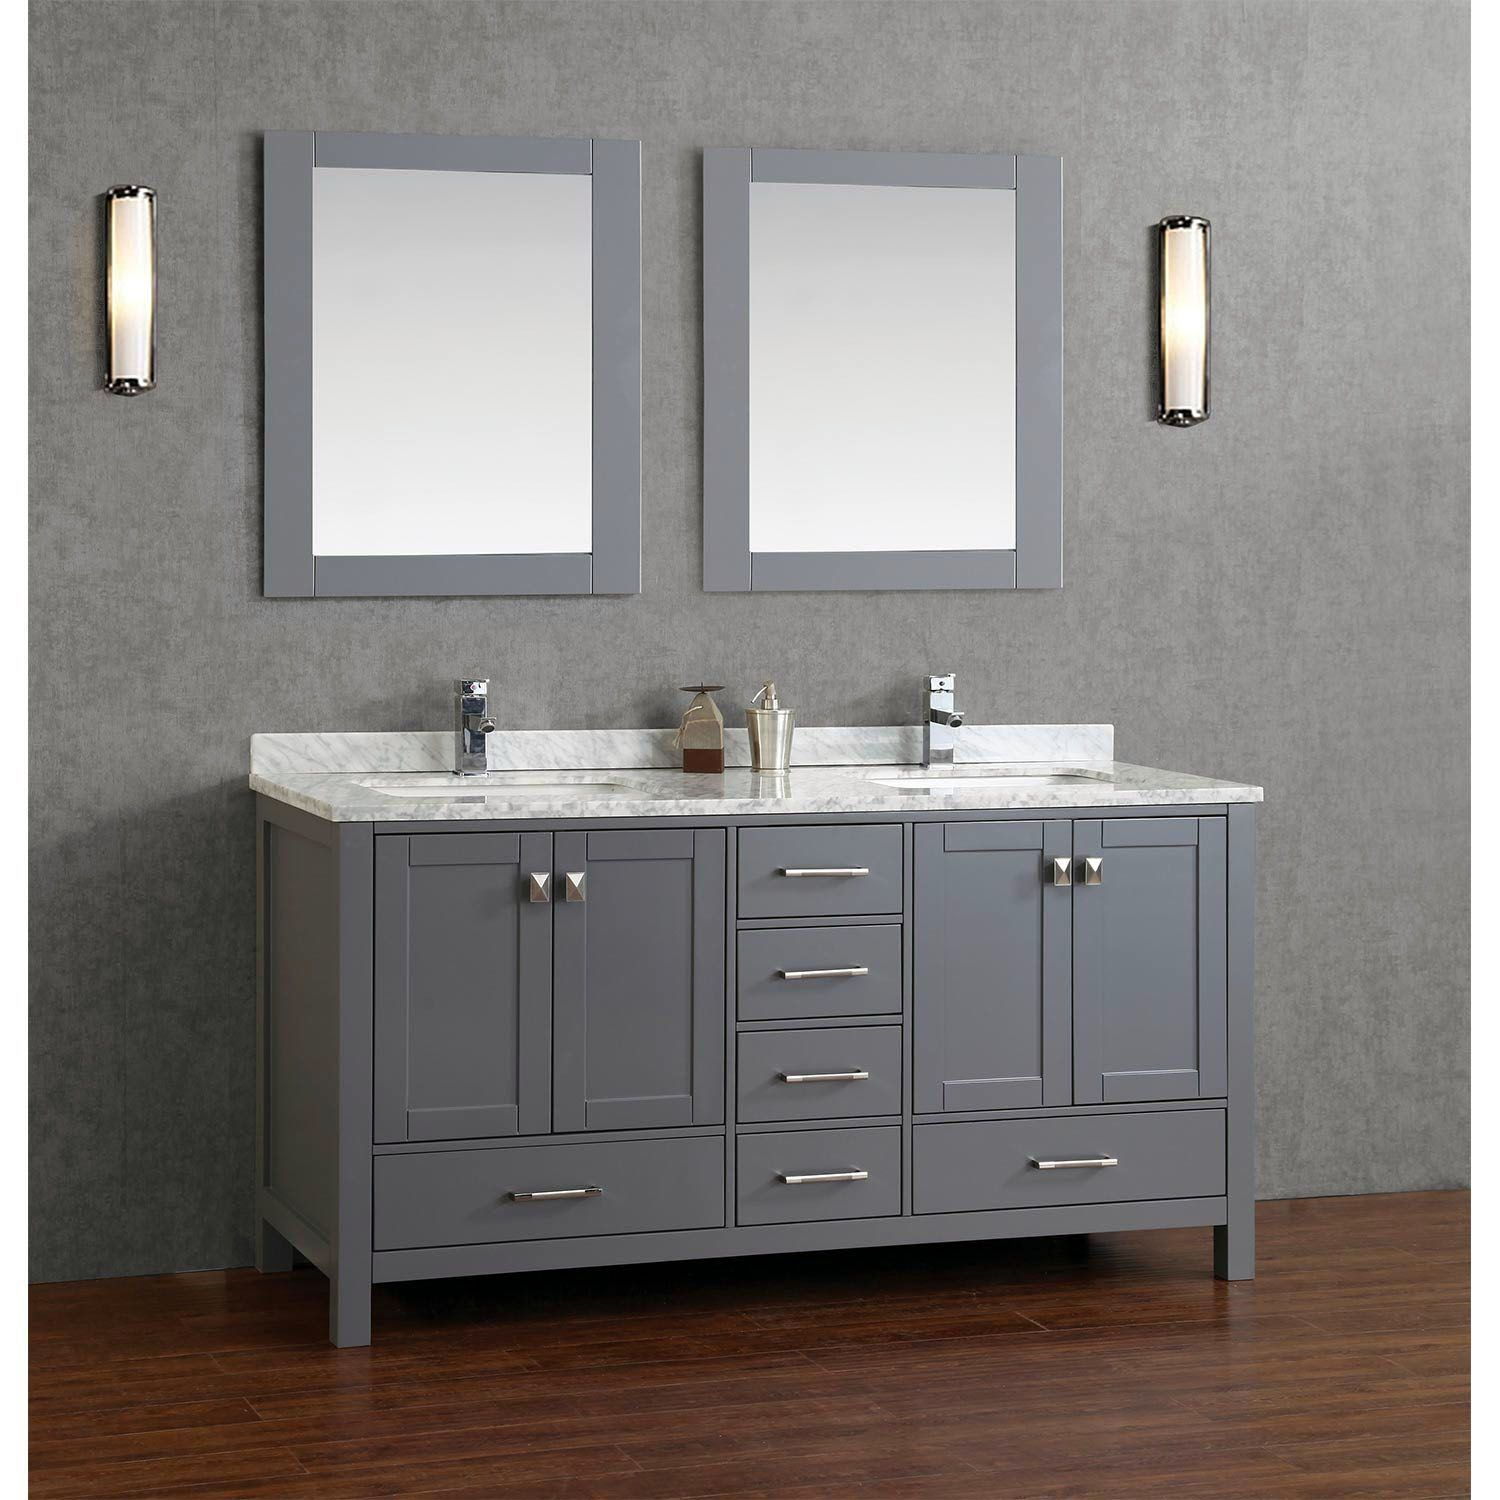 Incredible Bathroom Vanity Faucets Clearance You Ll Love